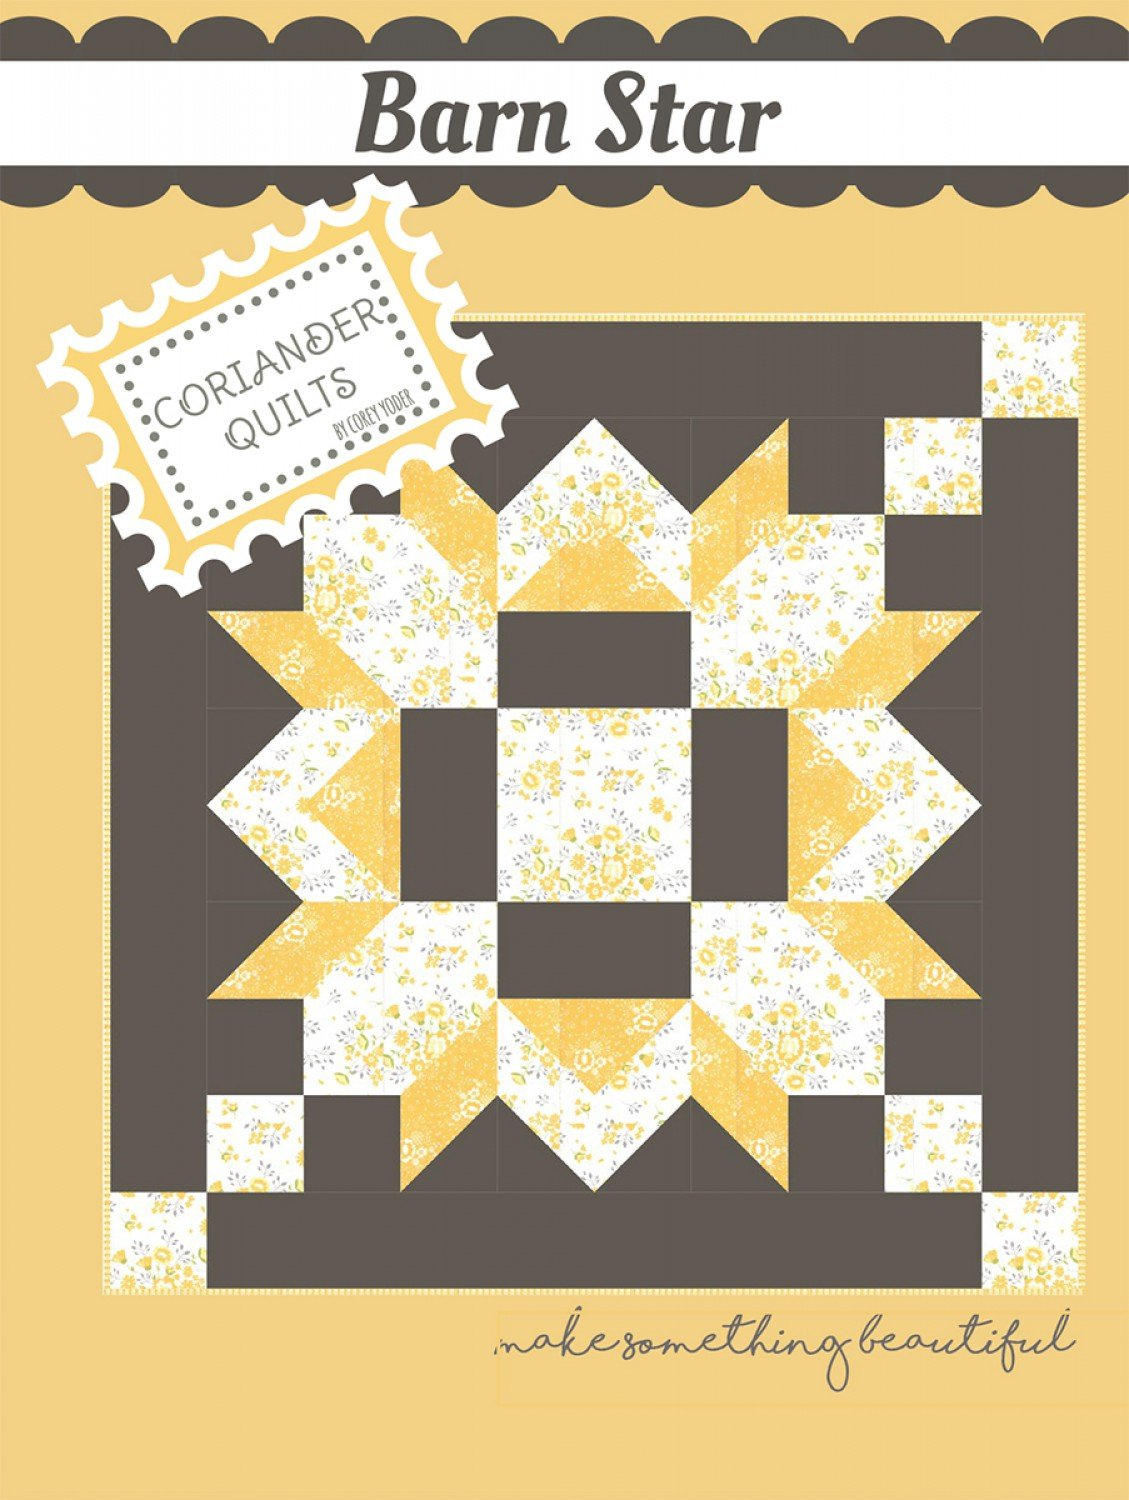 Barn Star from Coriander Quilts